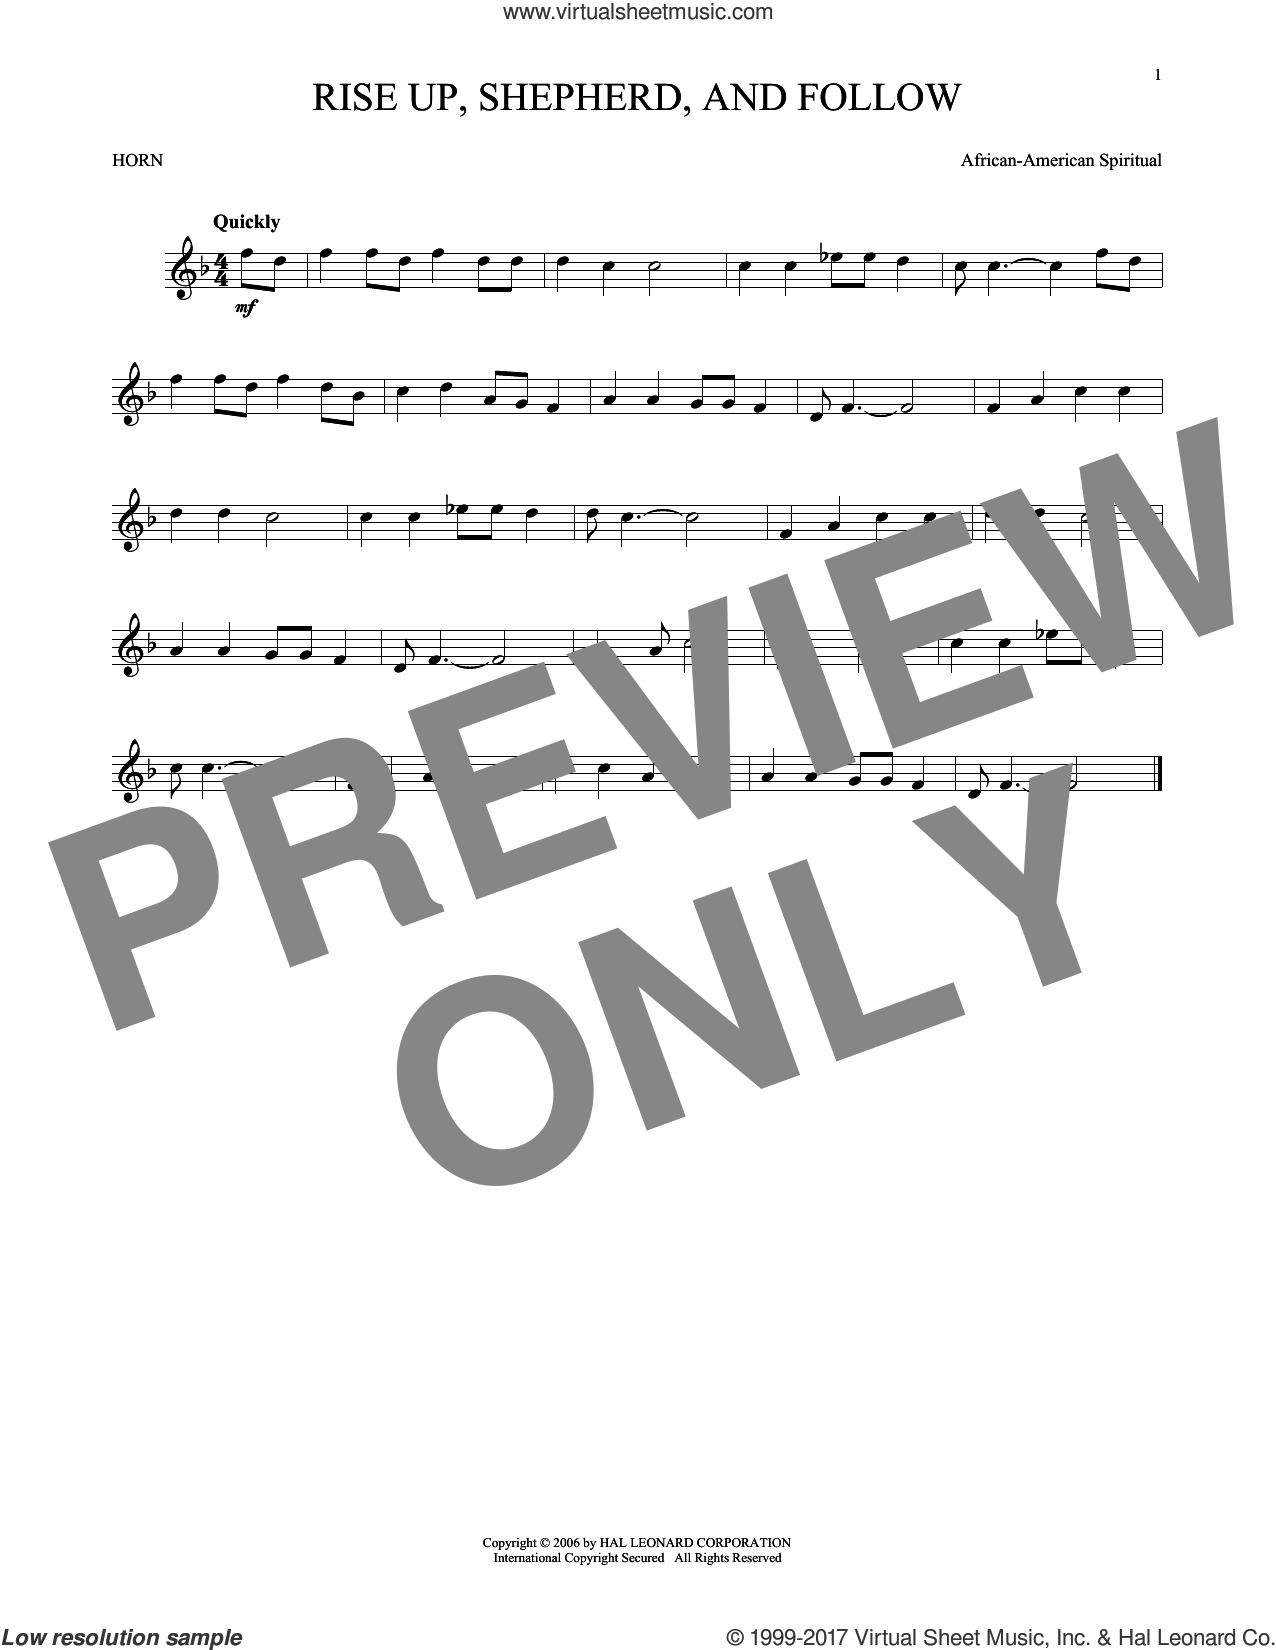 Rise Up, Shepherd, And Follow sheet music for horn solo, intermediate skill level